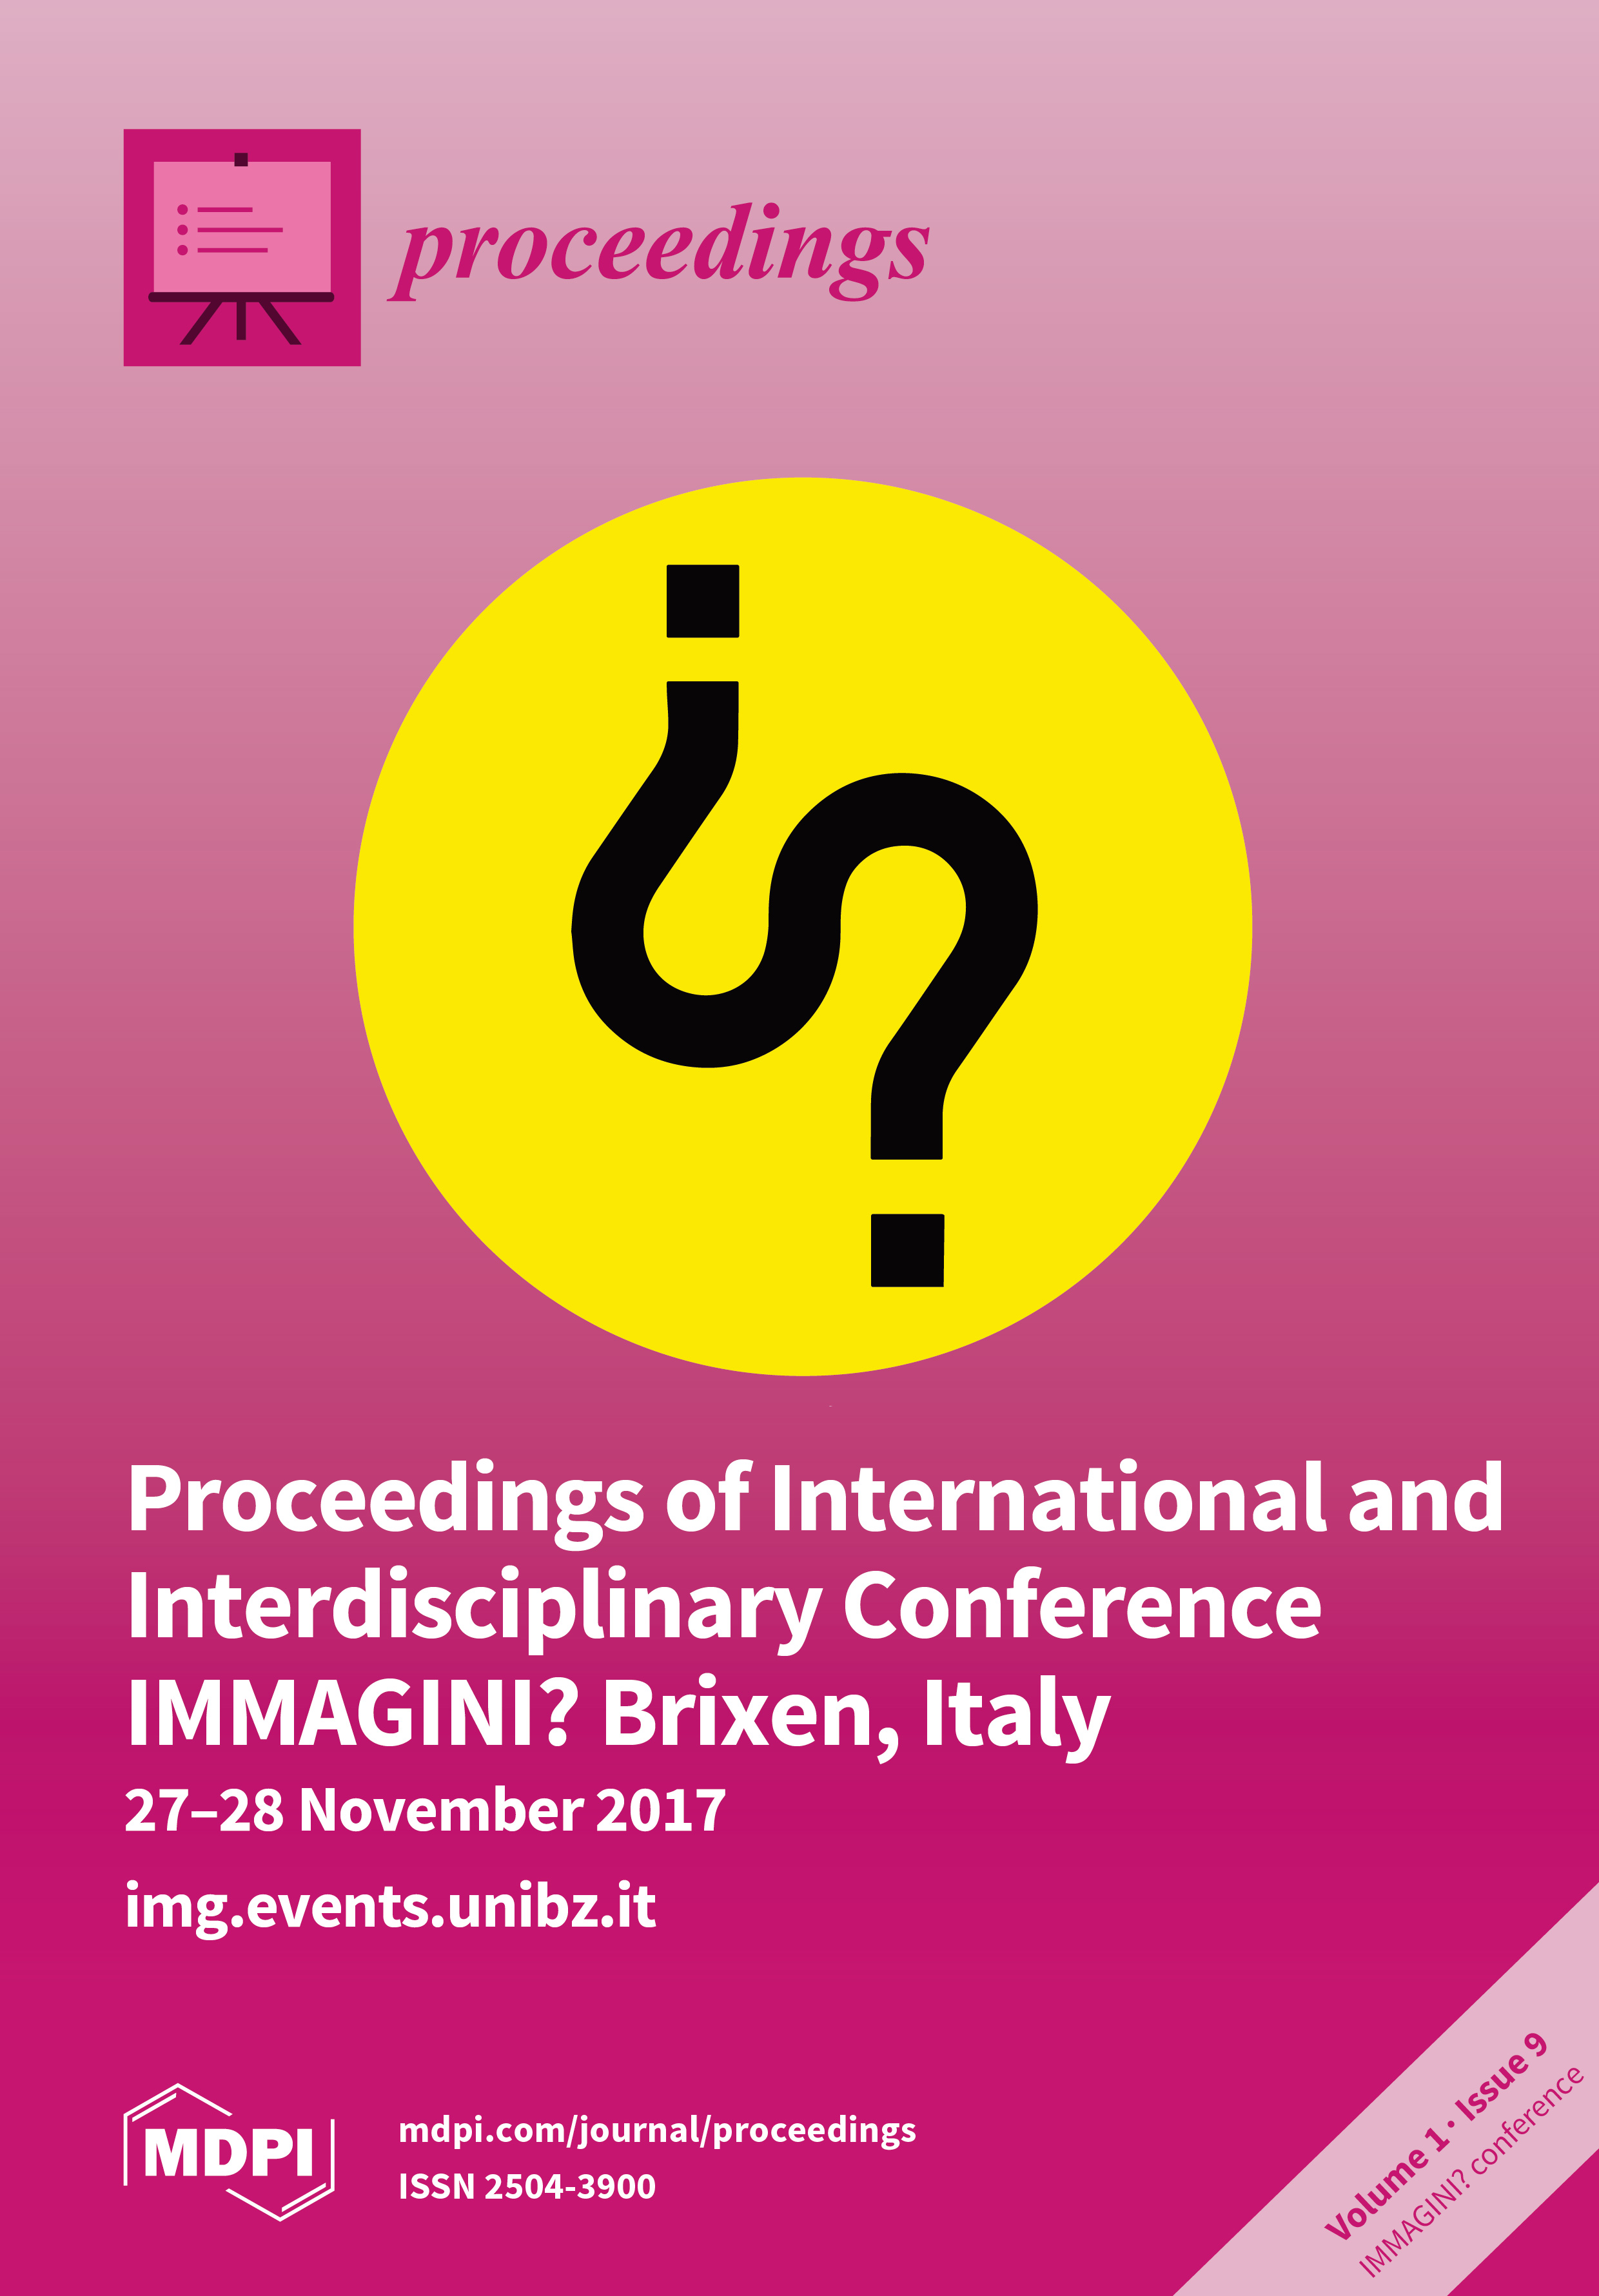 Immagini Natale We Heart It.Proceedings Immagini Conference 2017 Browse Articles